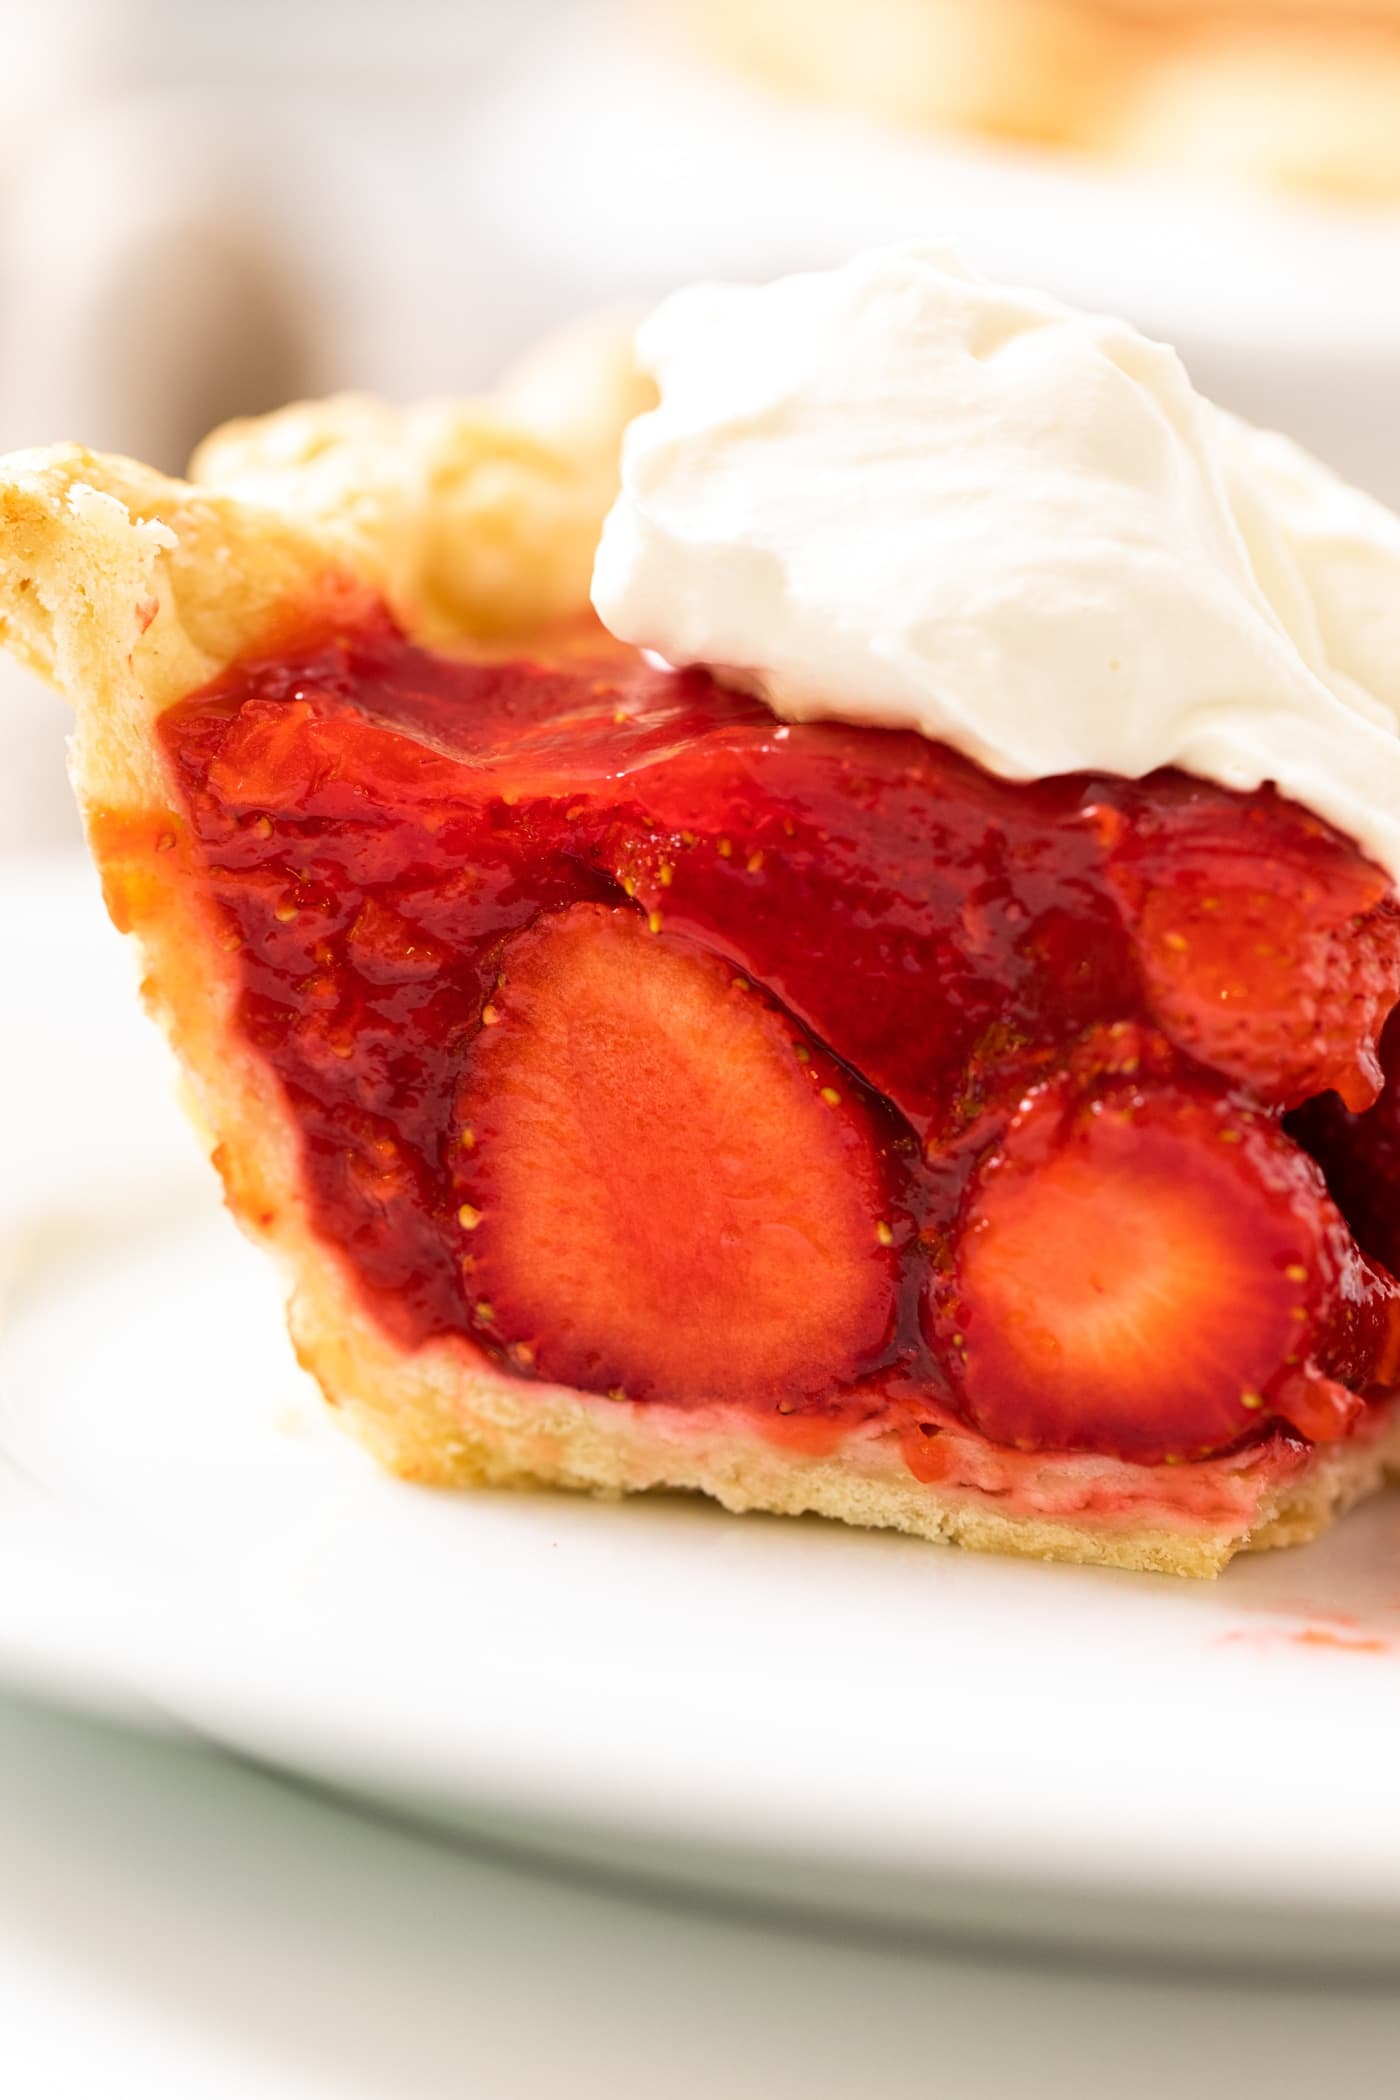 Side view of slice of red colored strawberry pie showing crust and cut slices of strawberries with piece of pie topped with whipped cream